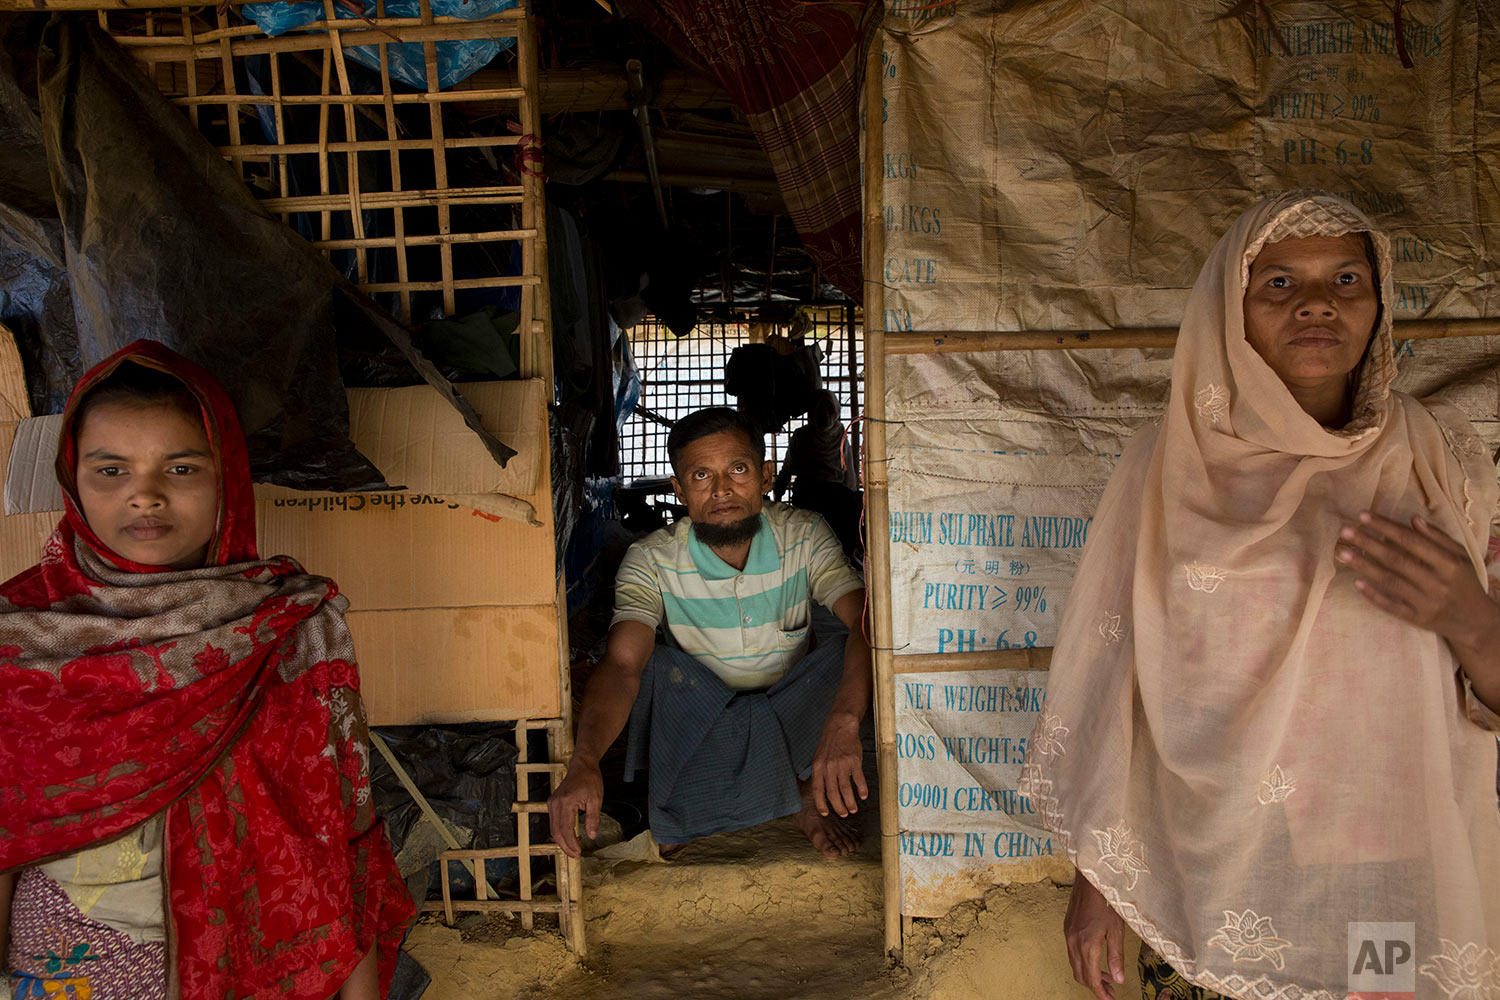 In this Tuesday, Jan. 23, 2018, photo, Abdul Gaffar, 50, who has repatriated two times, sits in his small kiosk at BaluKhali refugee camp 50 kilometers (32 miles) from, Cox's Bazar, Bangladesh, Tuesday, Jan. 23, 2018. (AP Photo/Manish Swarup)   See these photos on AP Images